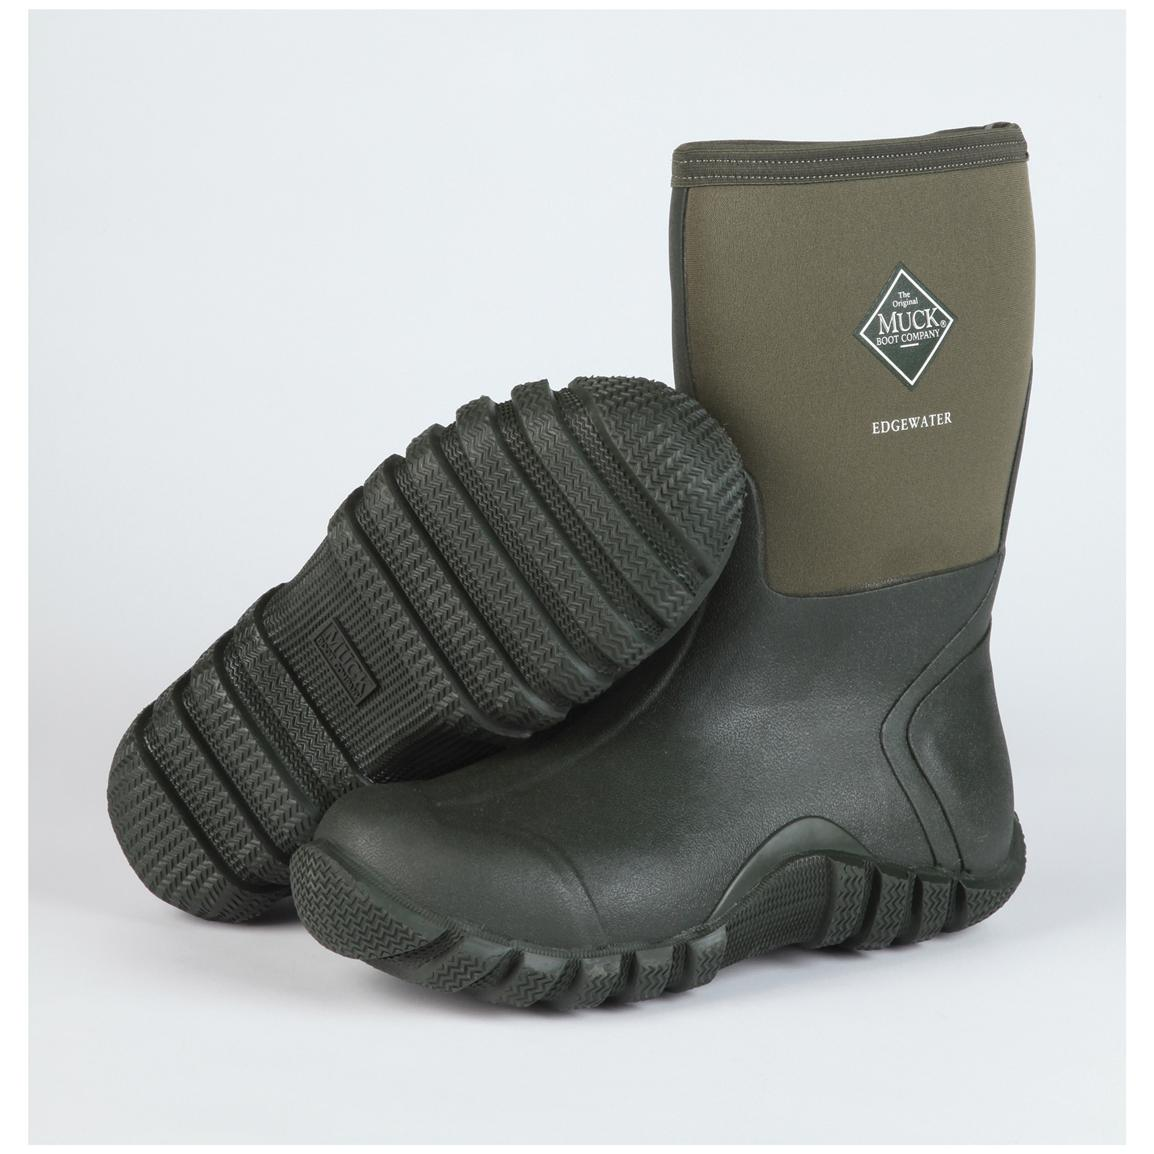 Men's Muck Boots™ Edgewater™ Mid Field Boots